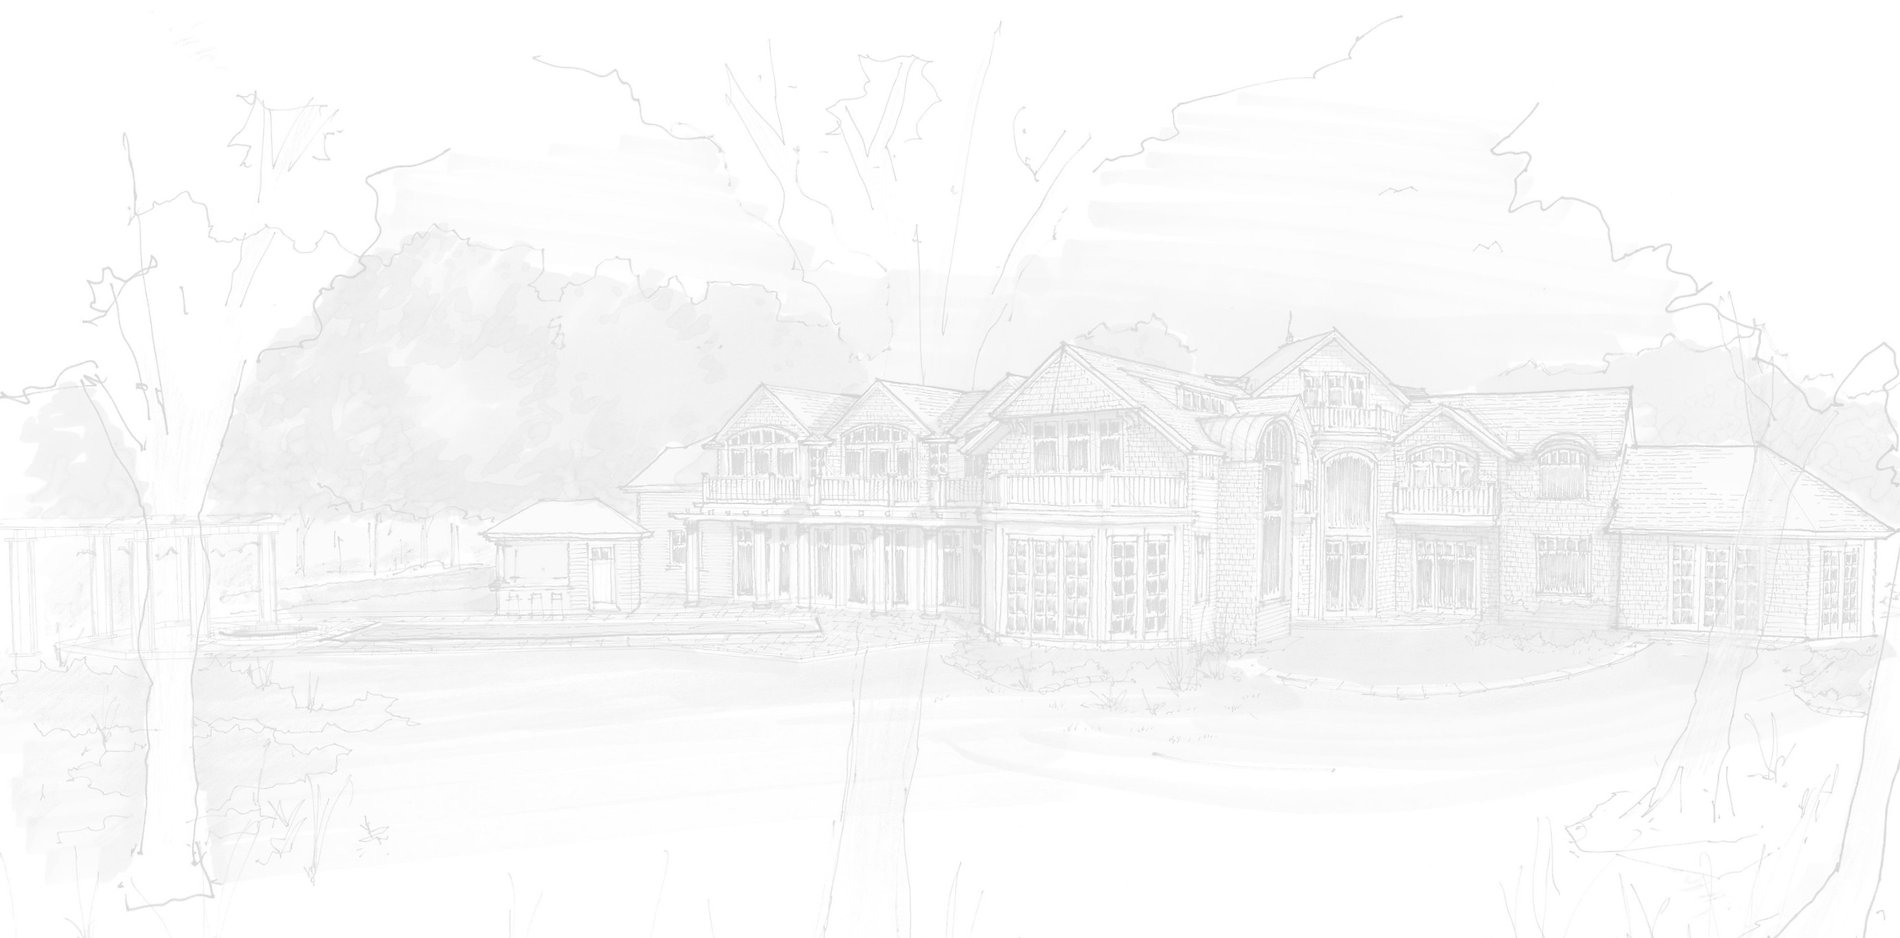 background%2520sketch%2520of%2520seapuit